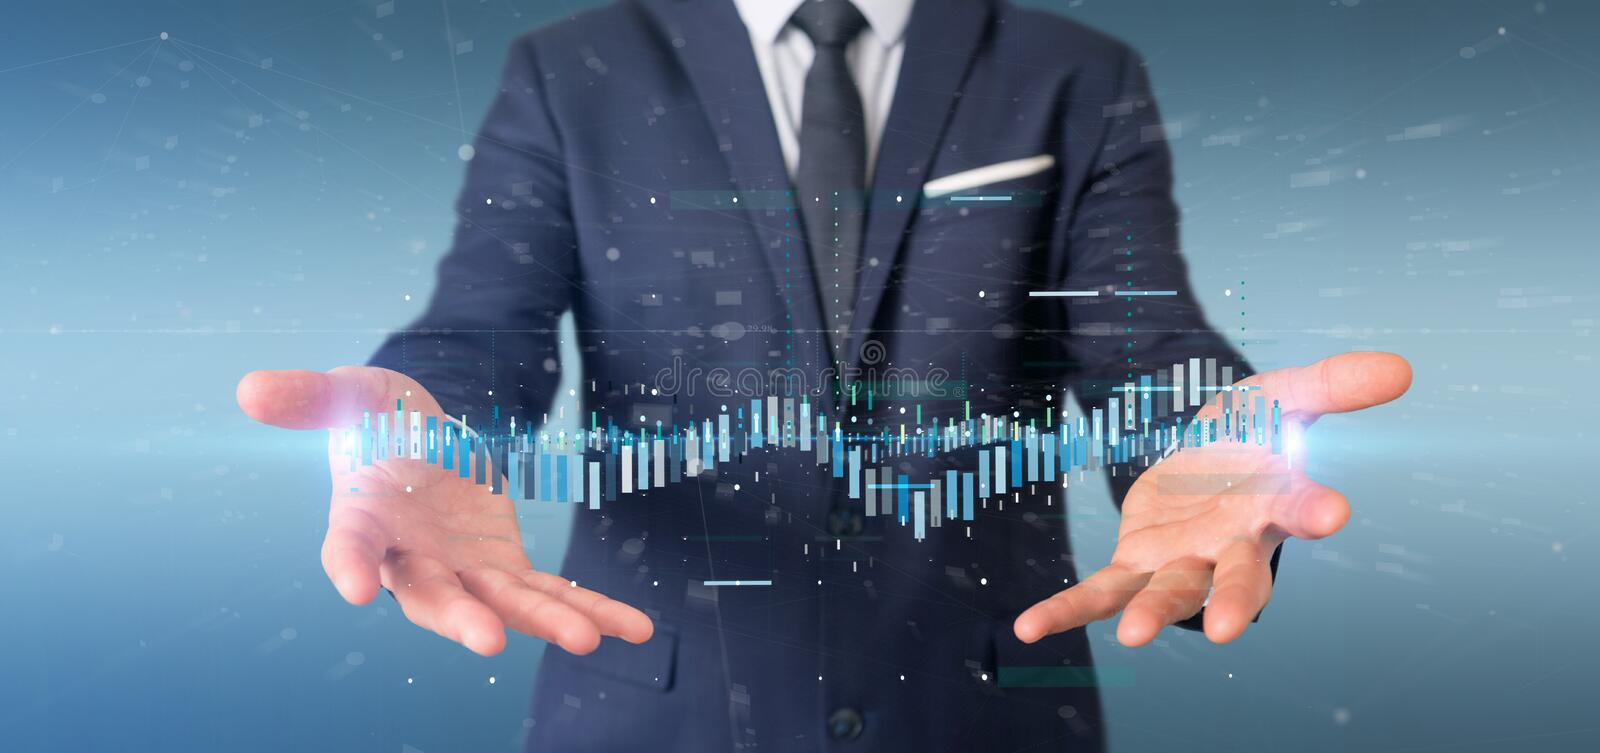 Businessman holding a Business stock exchange trading data information. View of a Businessman holding a Business stock exchange trading data information royalty free stock photos